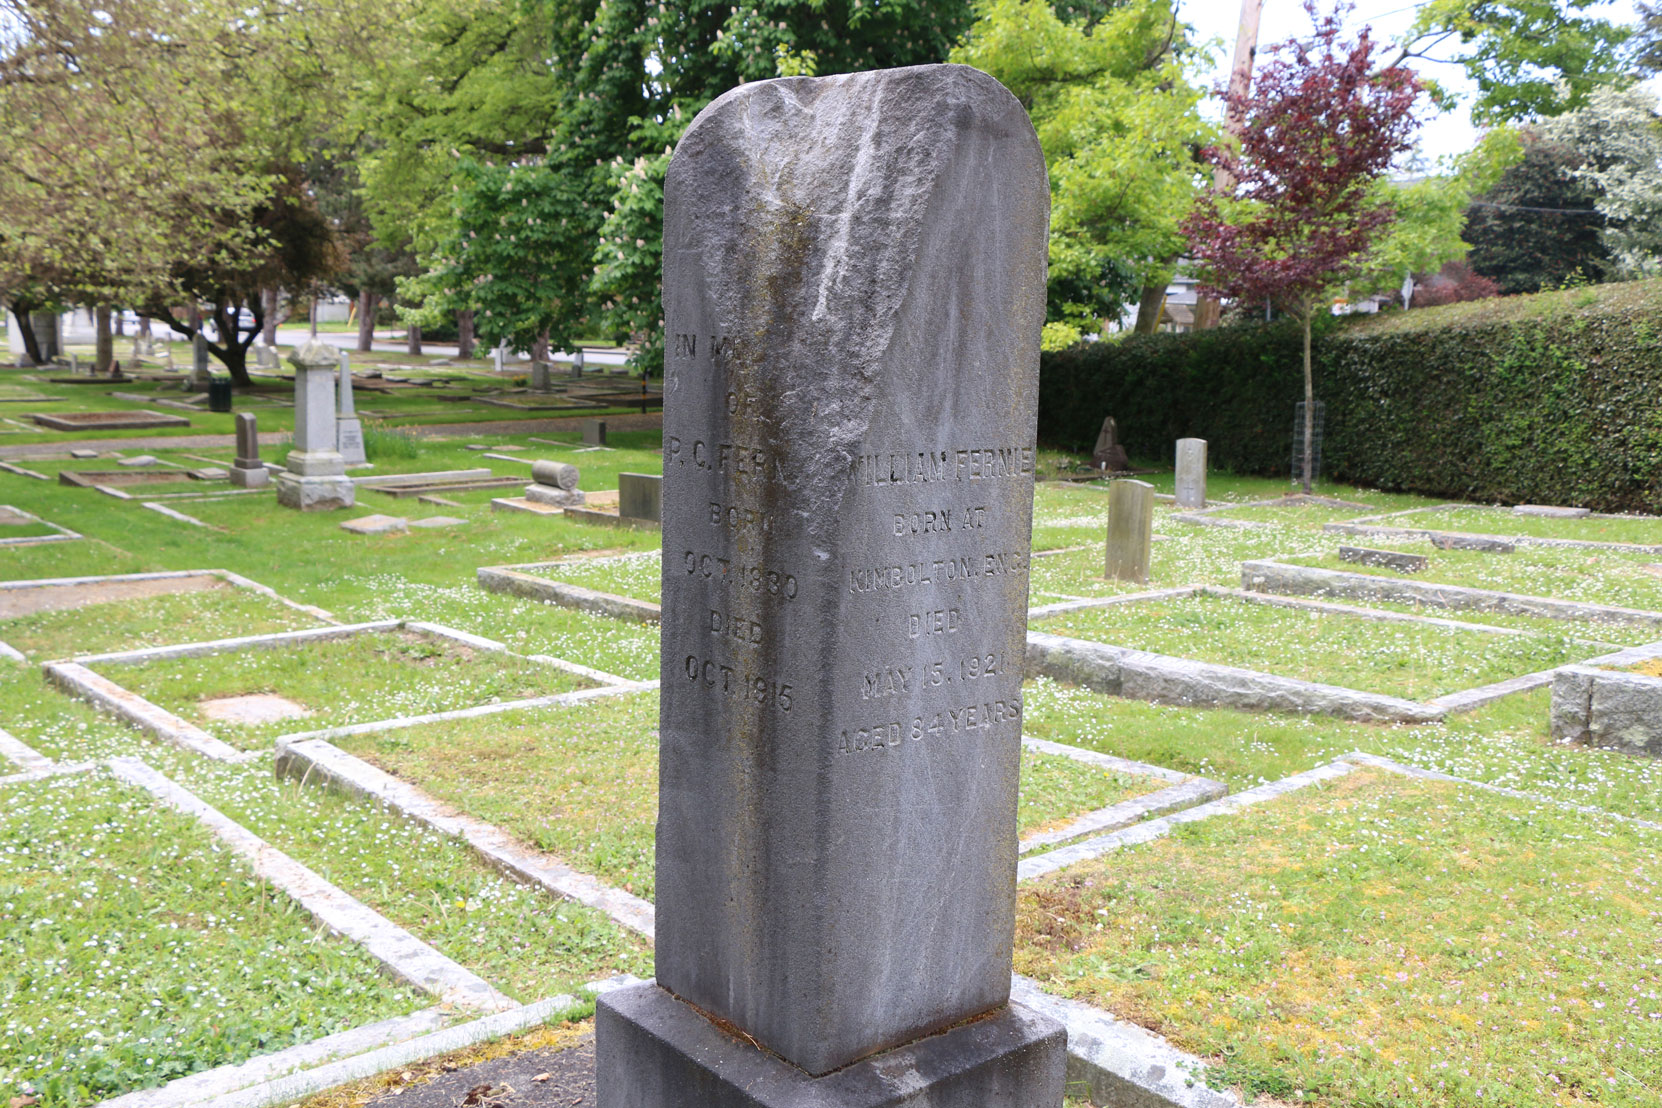 Damage to gravestone of Peter Fernie & William Fernie, Ross Bay Cemetery, Victoria, B.C. (photo by Mark Anderson)